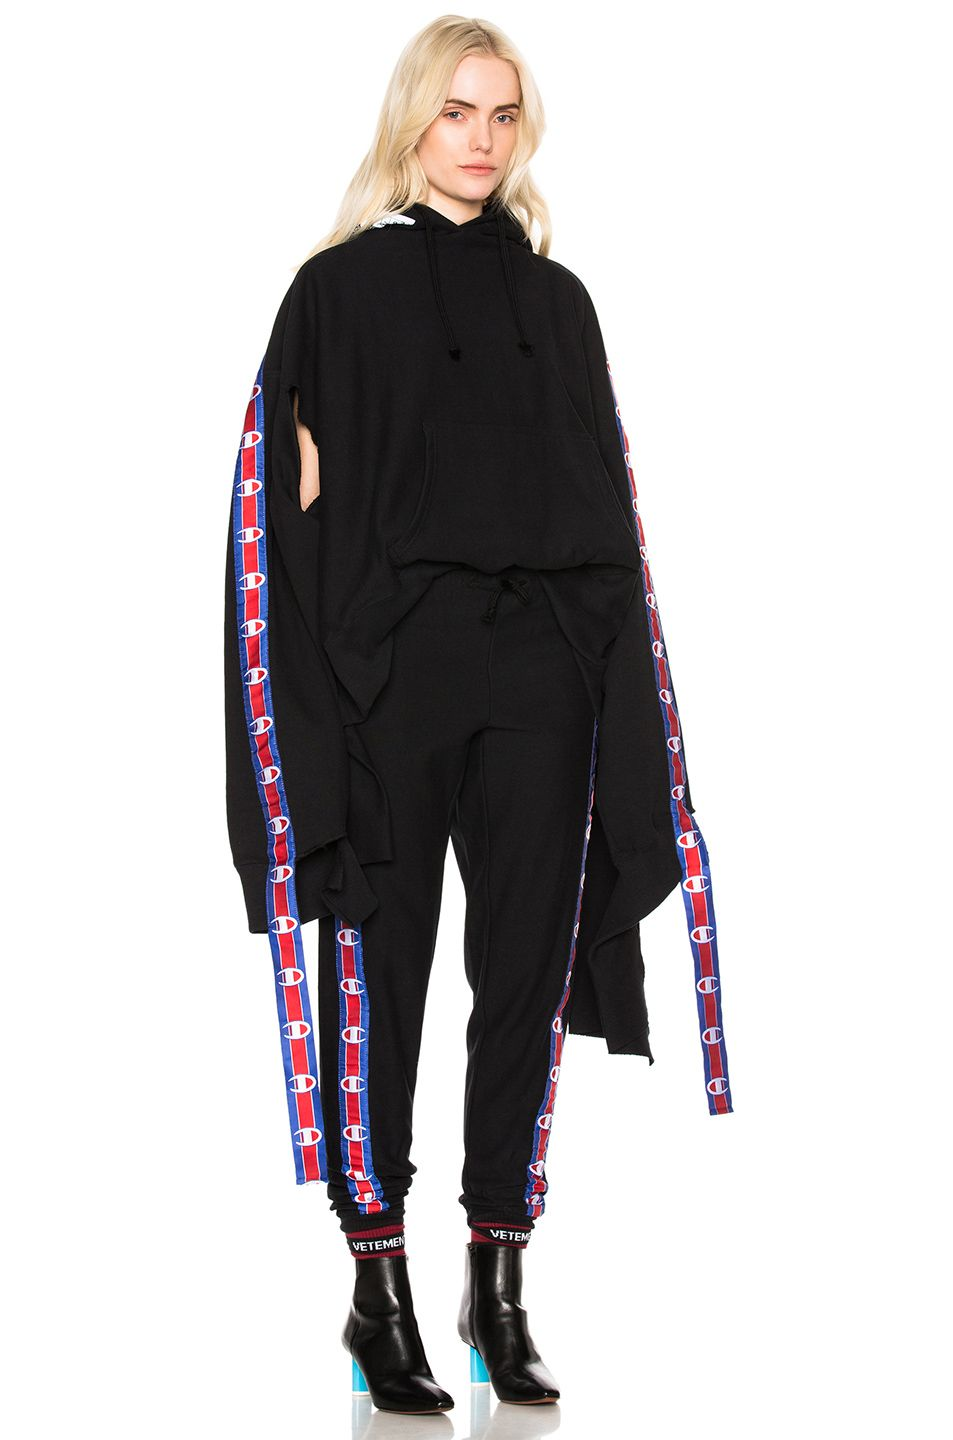 dd94d7693522 Image 1 of VETEMENTS x Champion In Progress Hoodie with Tape in Black